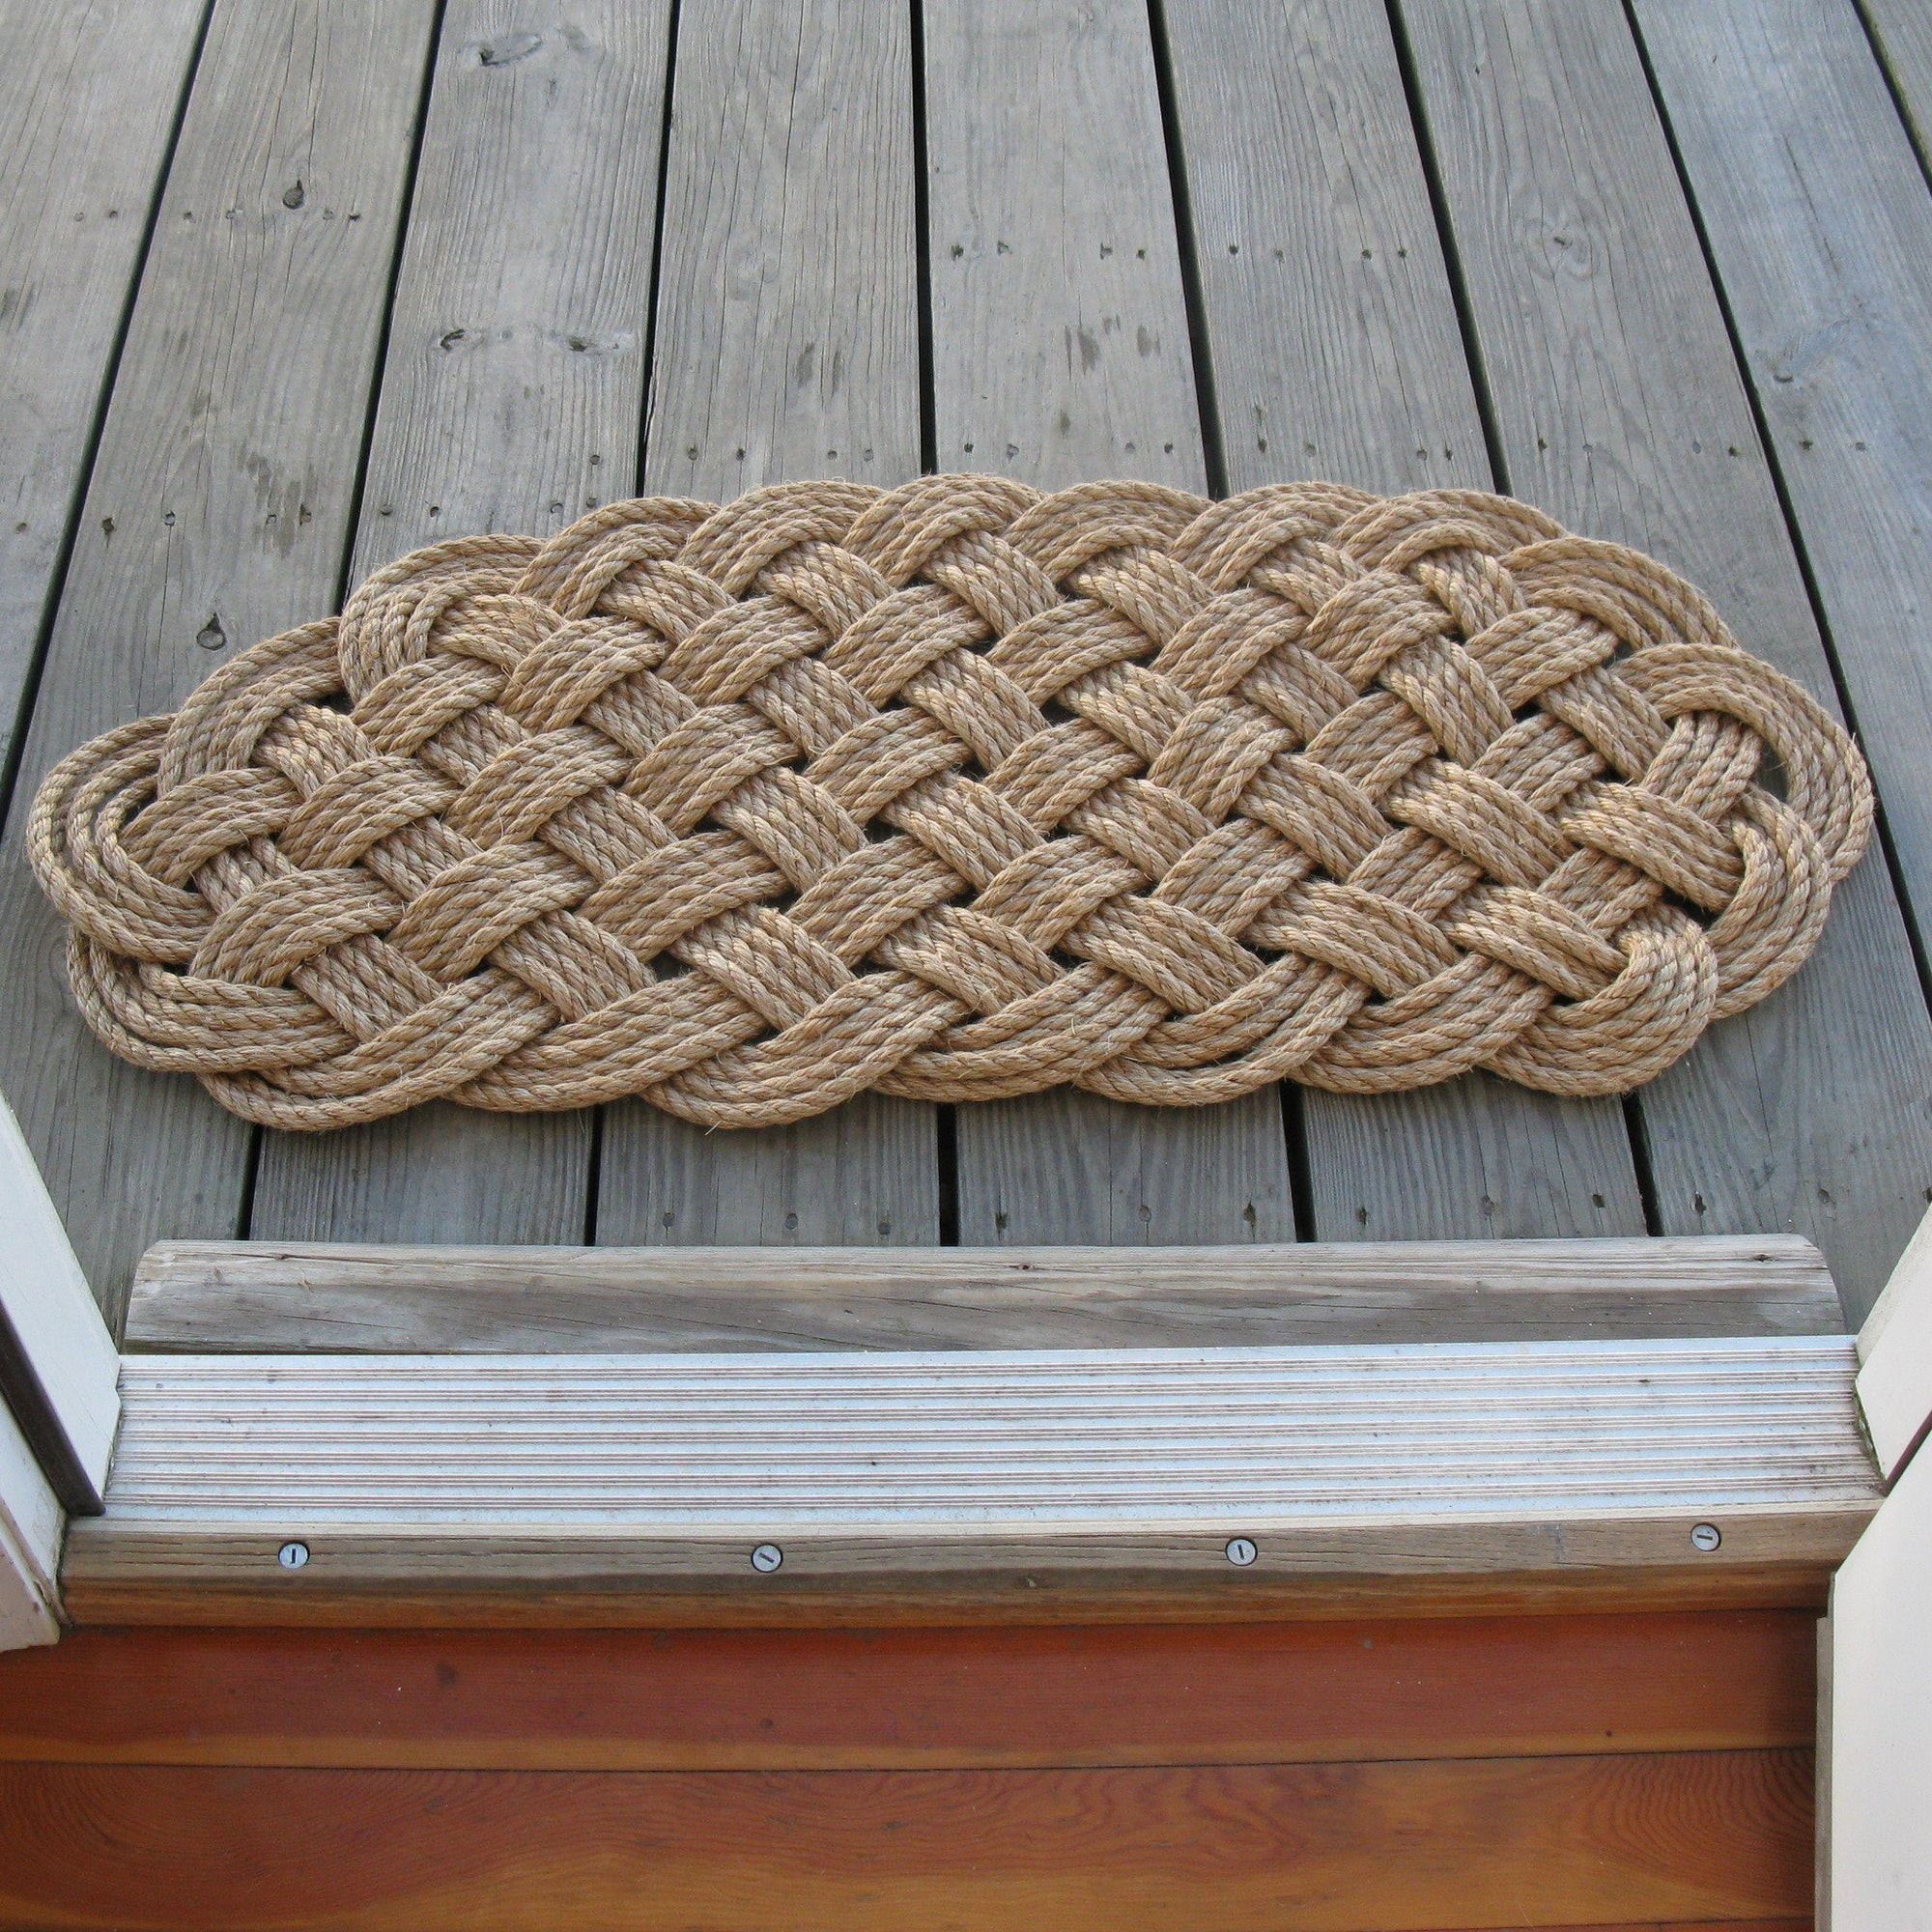 Nautical Knot Large Nautical Rope Mat from natural Manila Rope 2275 handmade at Mystic Knotwork